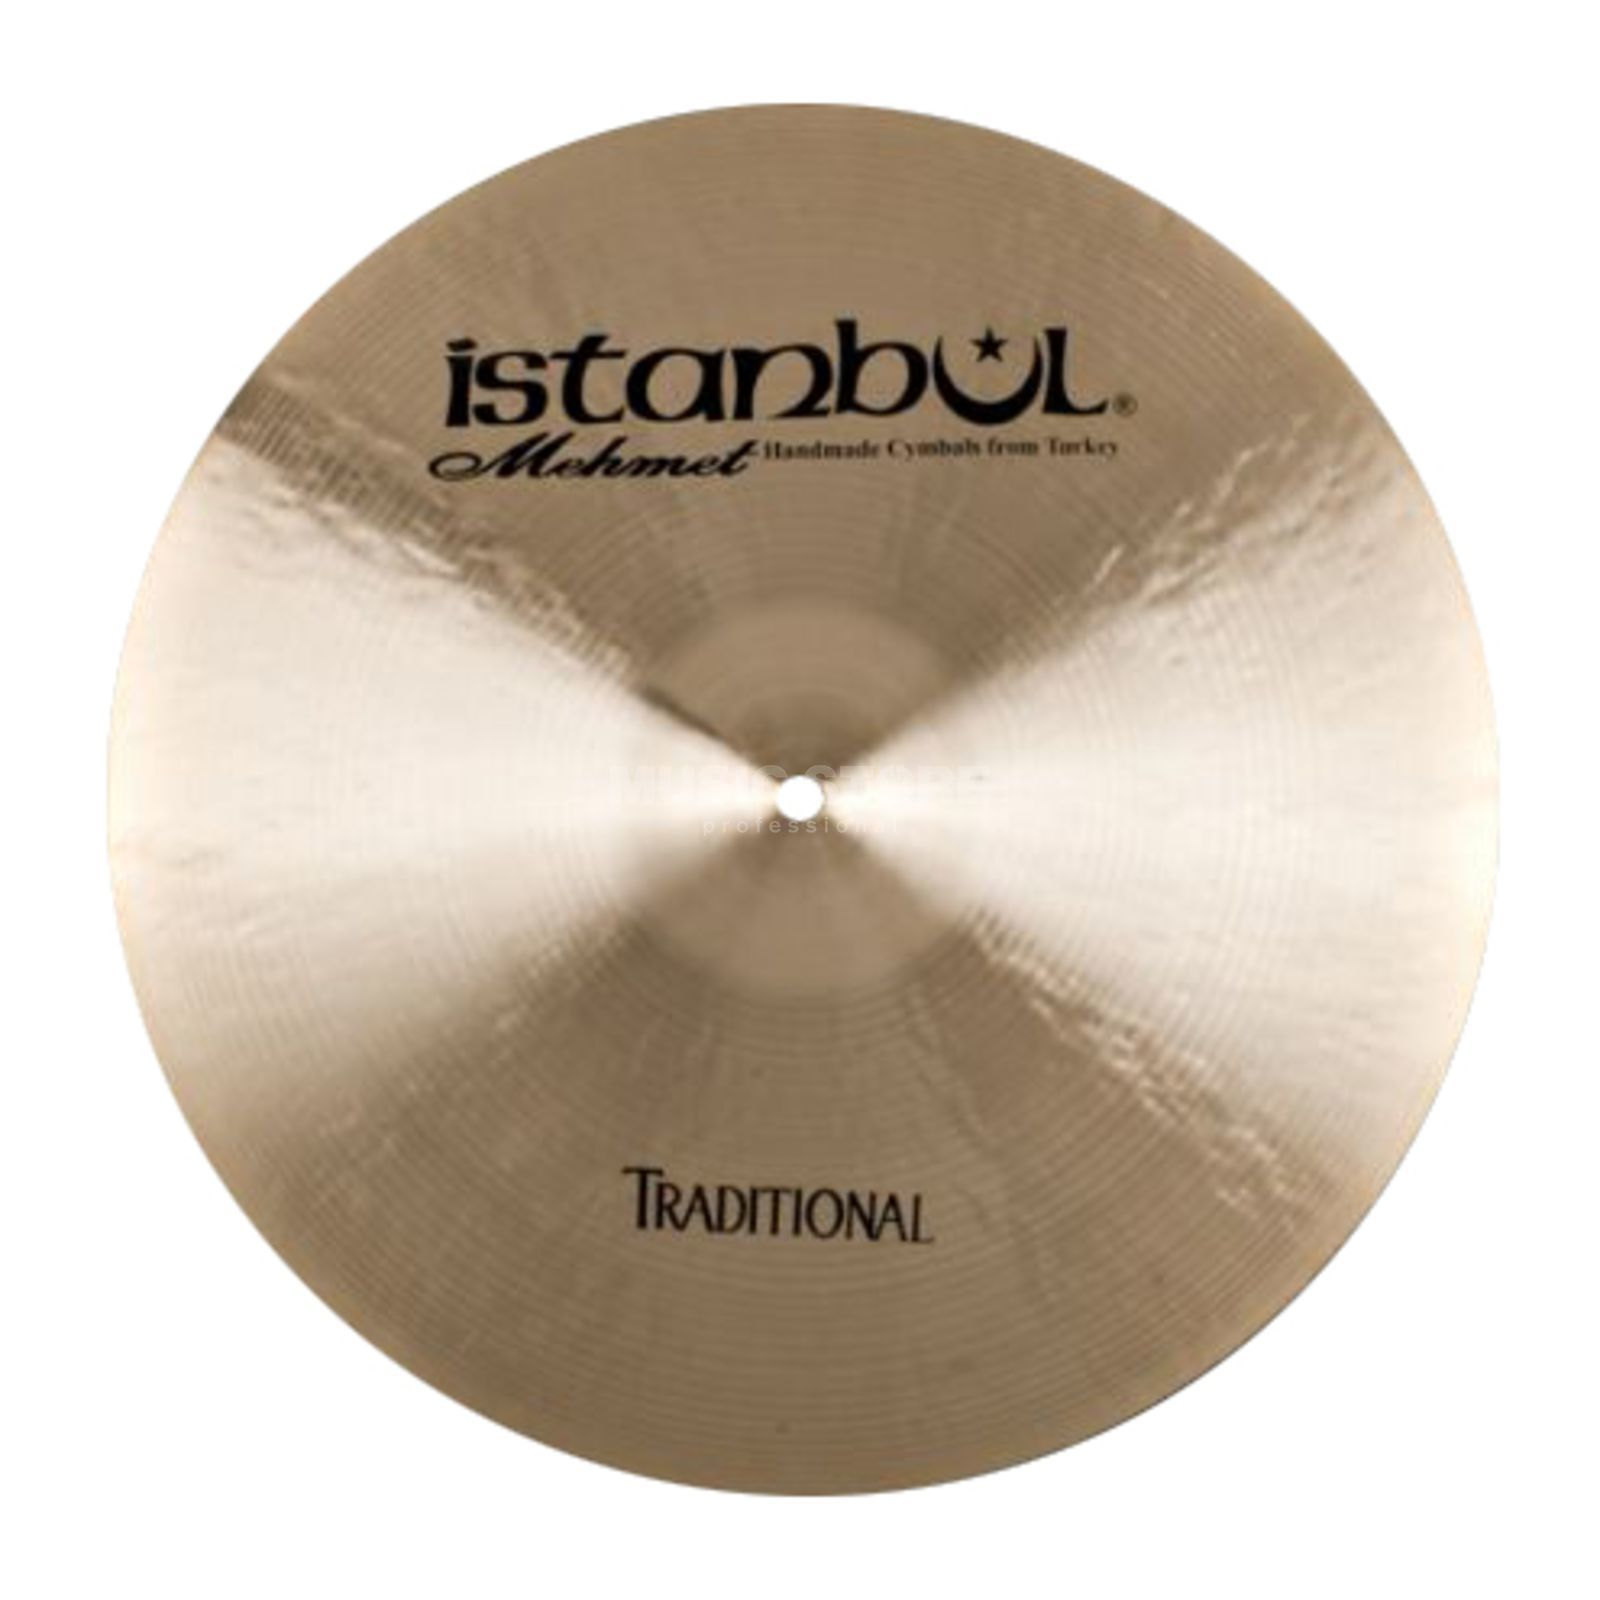 "Istanbul Traditional Medium Crash 14"", CM15 Product Image"